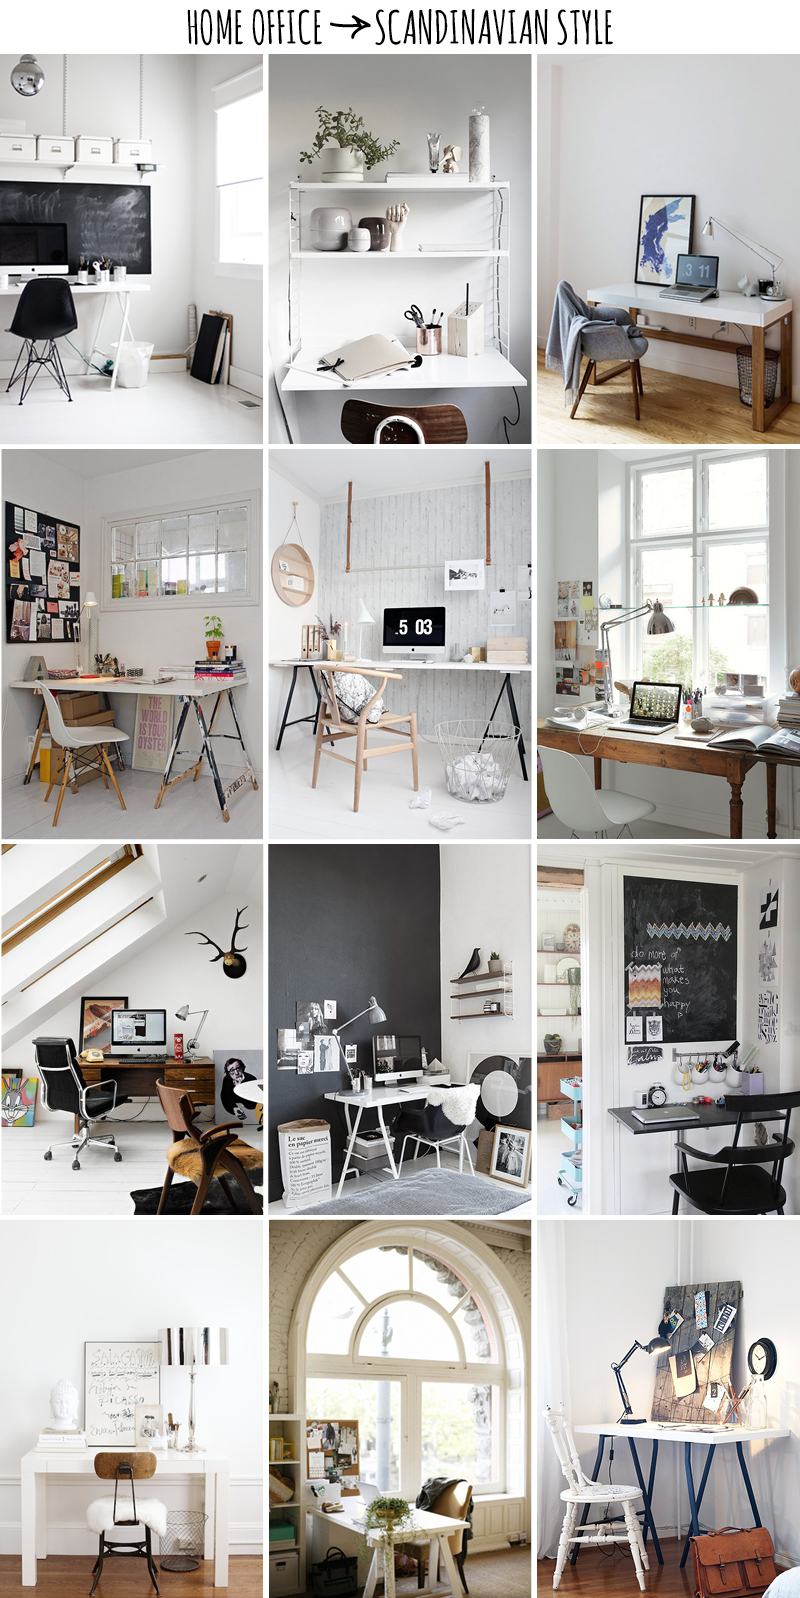 03_home office_scandinavian style